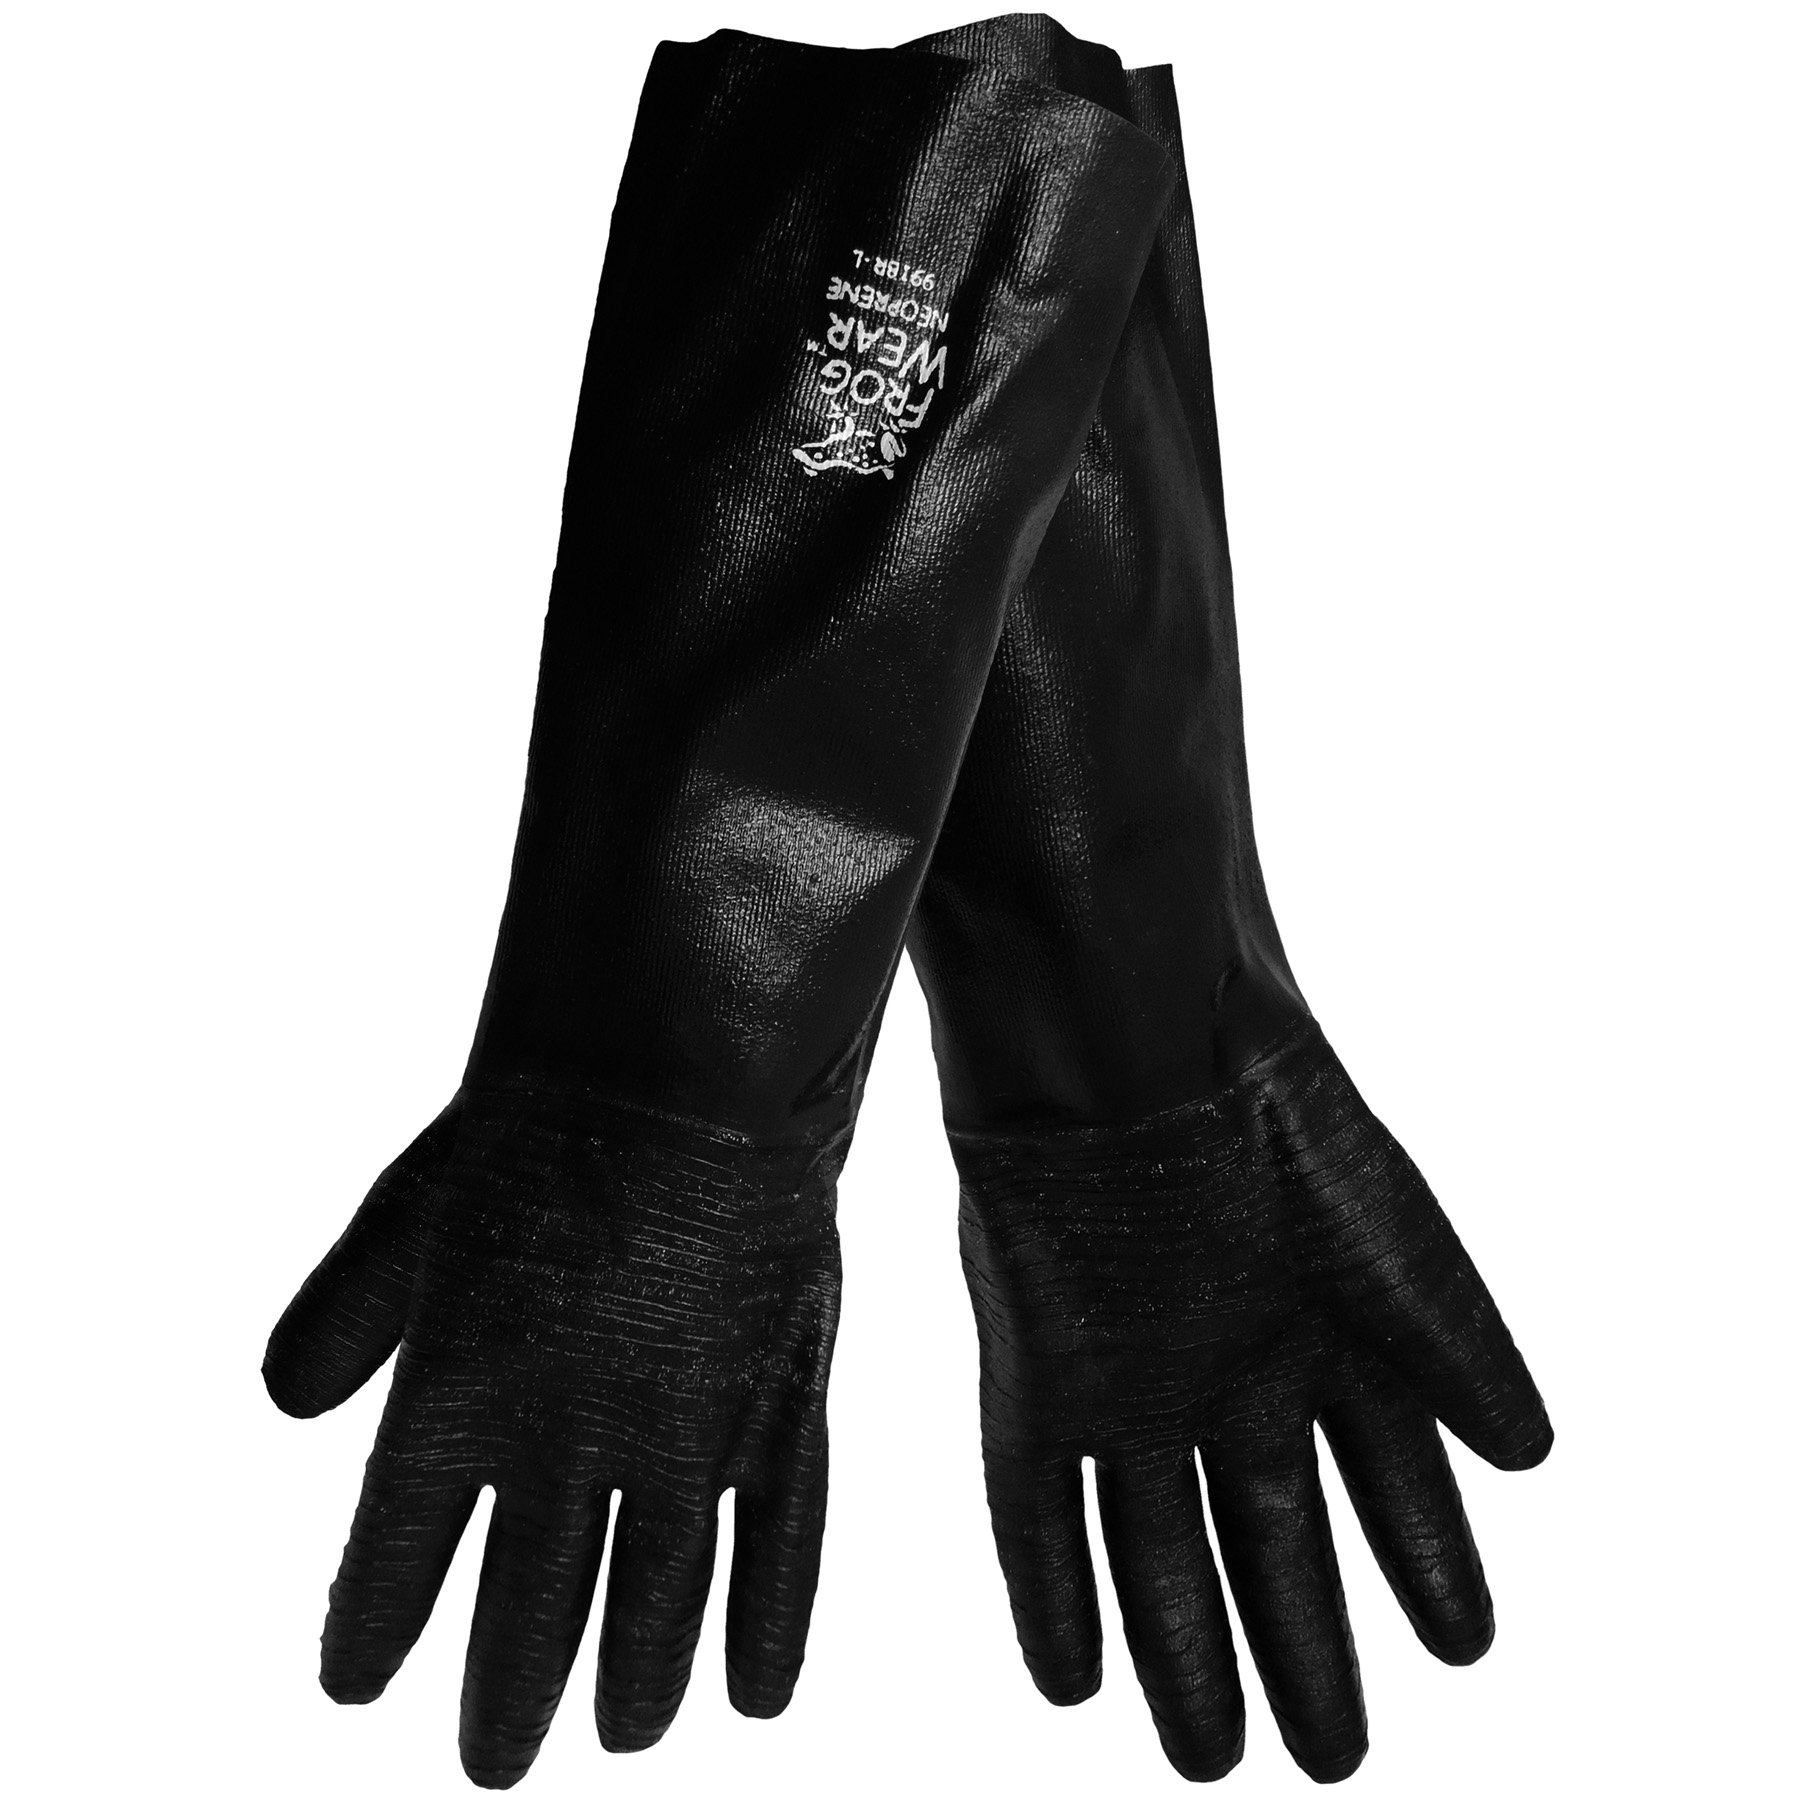 Global Glove 9918R FrogWear Heavywall Support Neoprene Glove, Chemical Resistent, 18'' Length, Large, Rough (Case of 72)